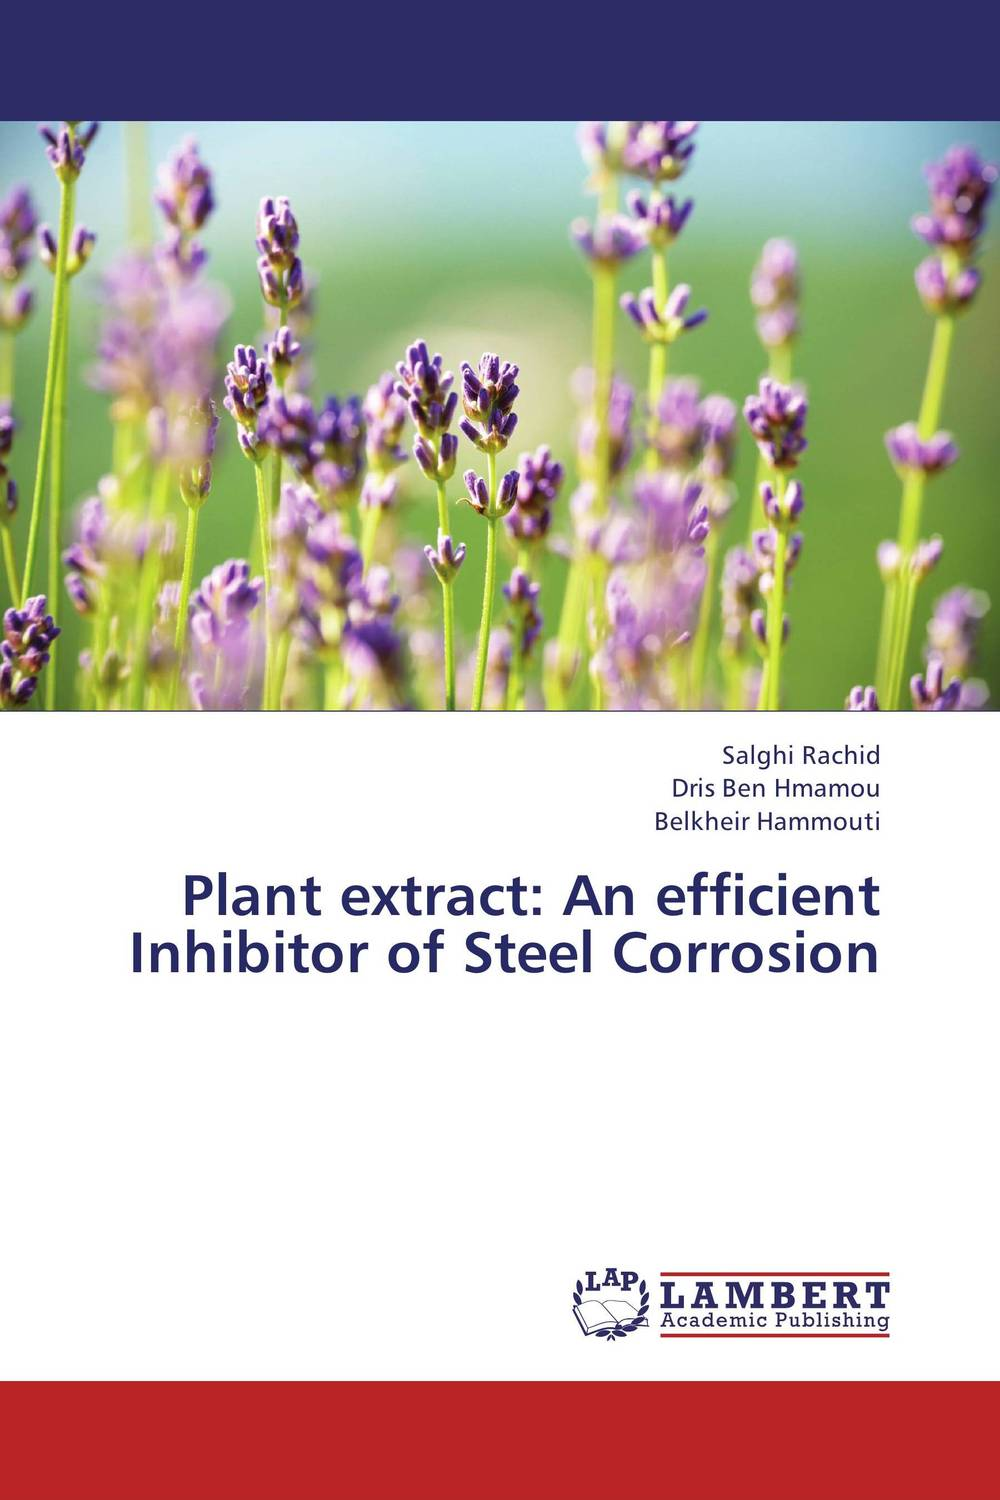 Plant extract: An efficient Inhibitor of Steel Corrosion